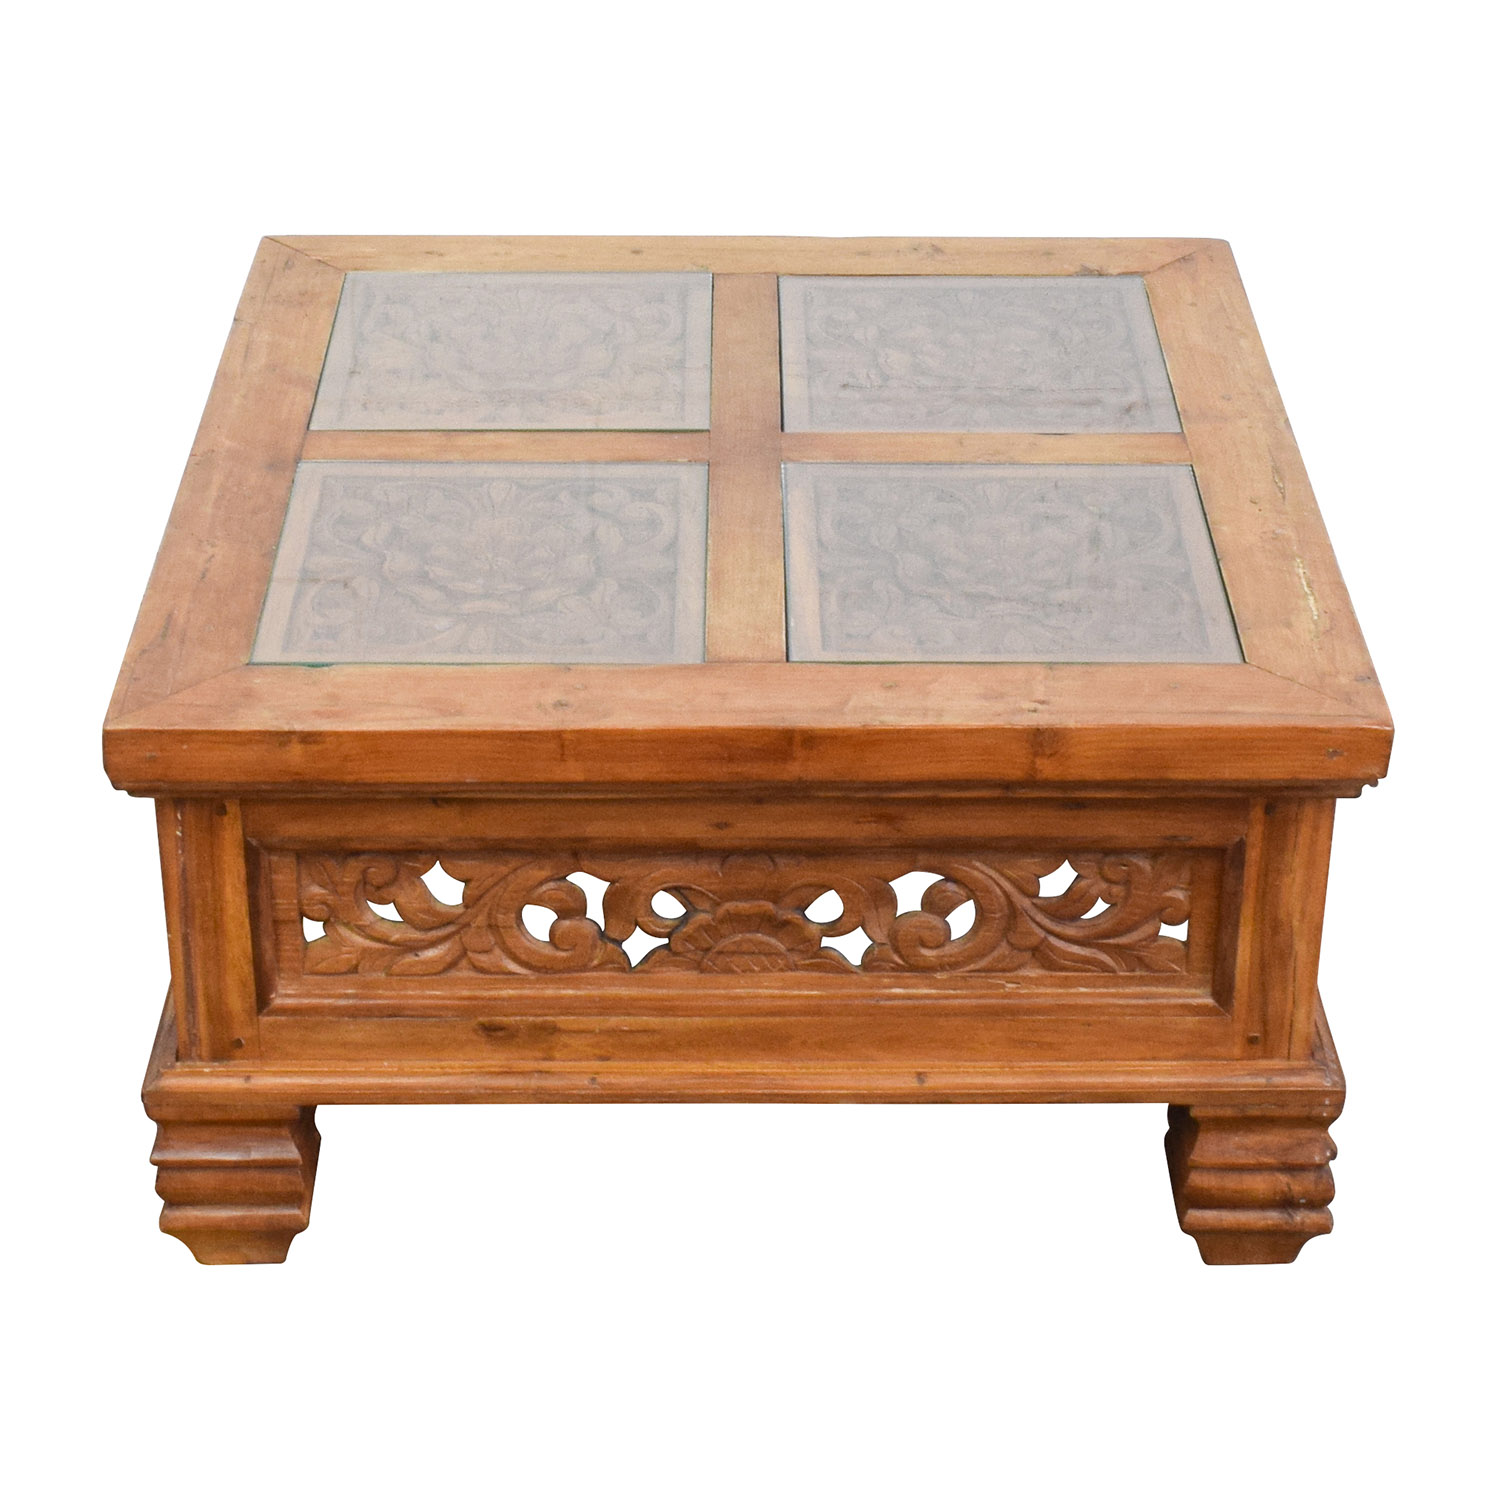 Teak Carved Coffee Table with Glass Top dimensions